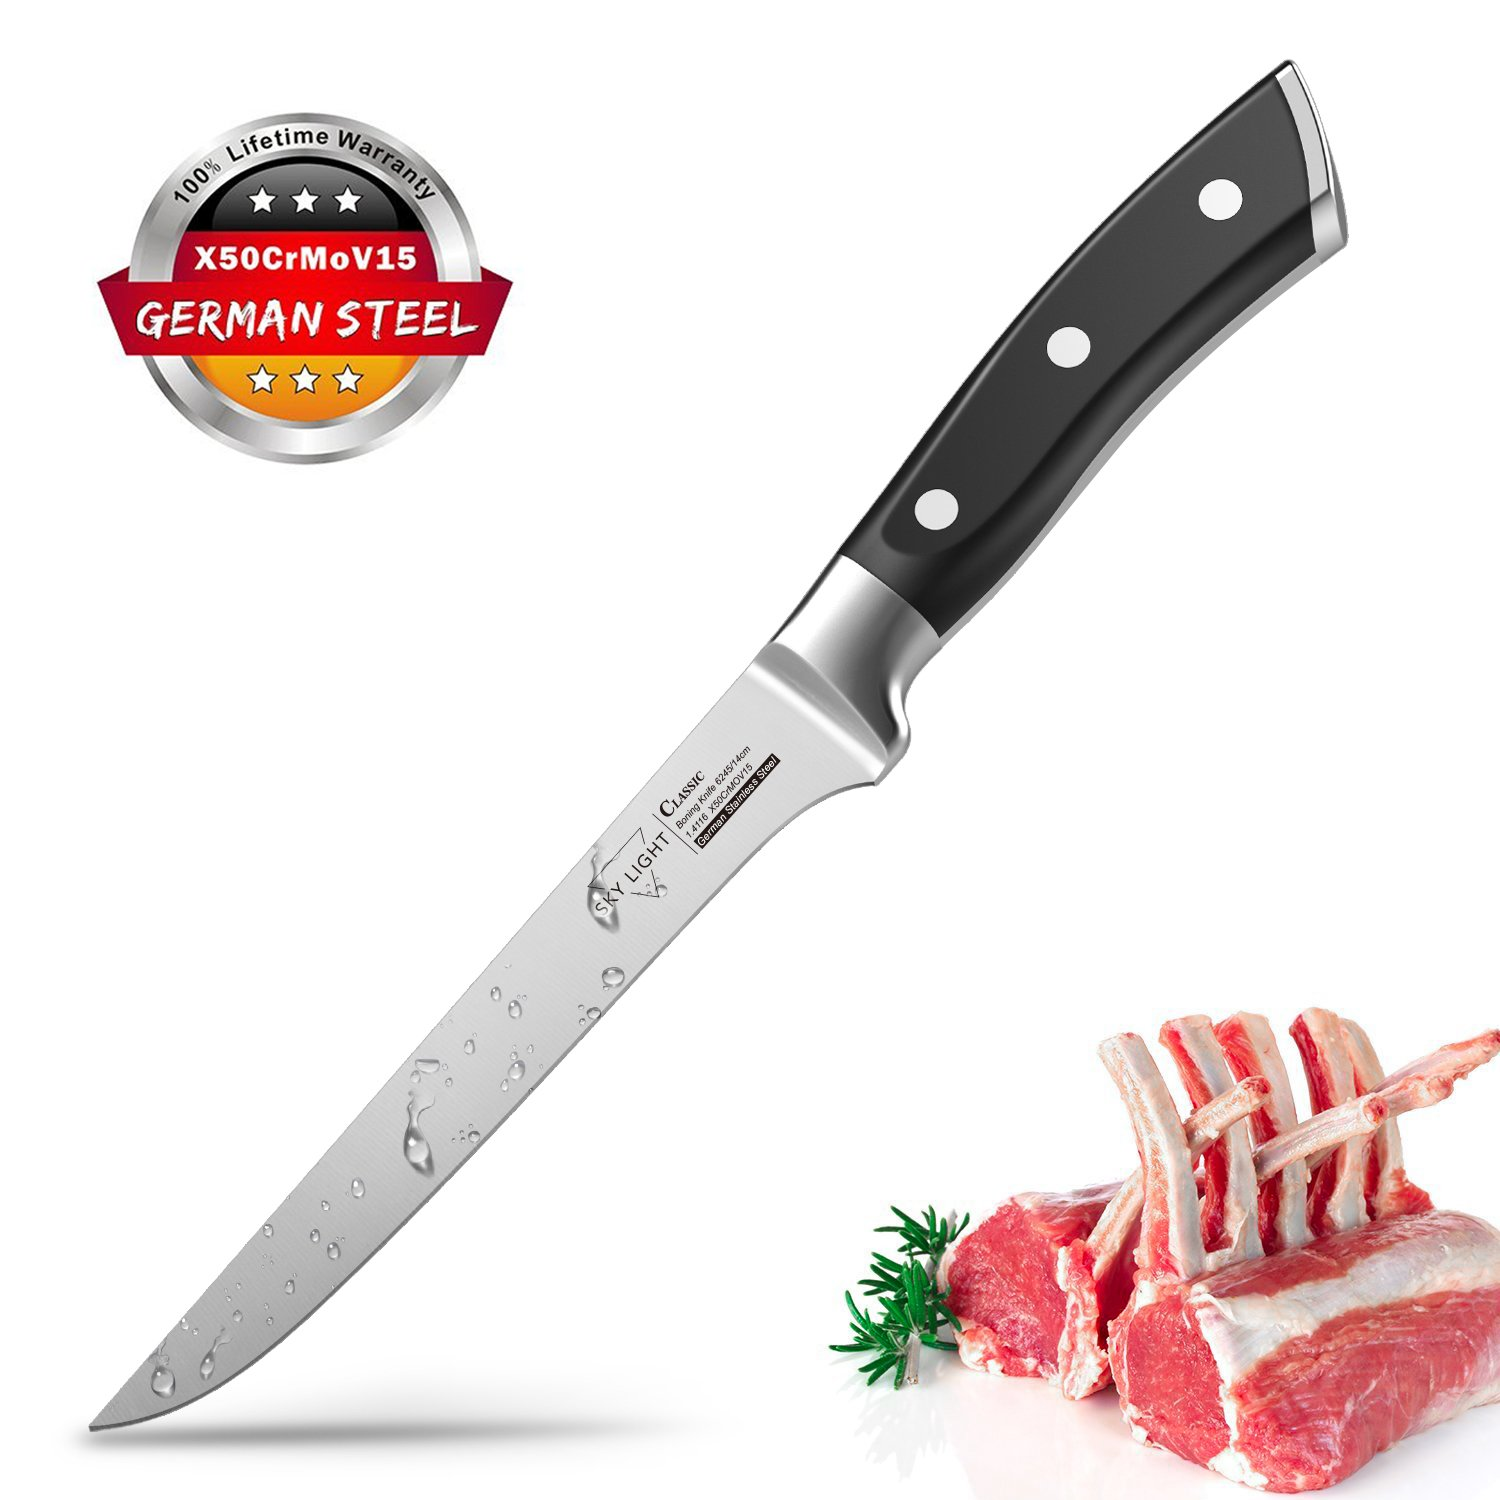 Boning Knife, SKY LIGHT Flexible Fillet Knives 6 inch for Meat Fish Poultry Chicken Professional Kitchen Knife High Carbon German Stainless Steel Chef Bone Knife